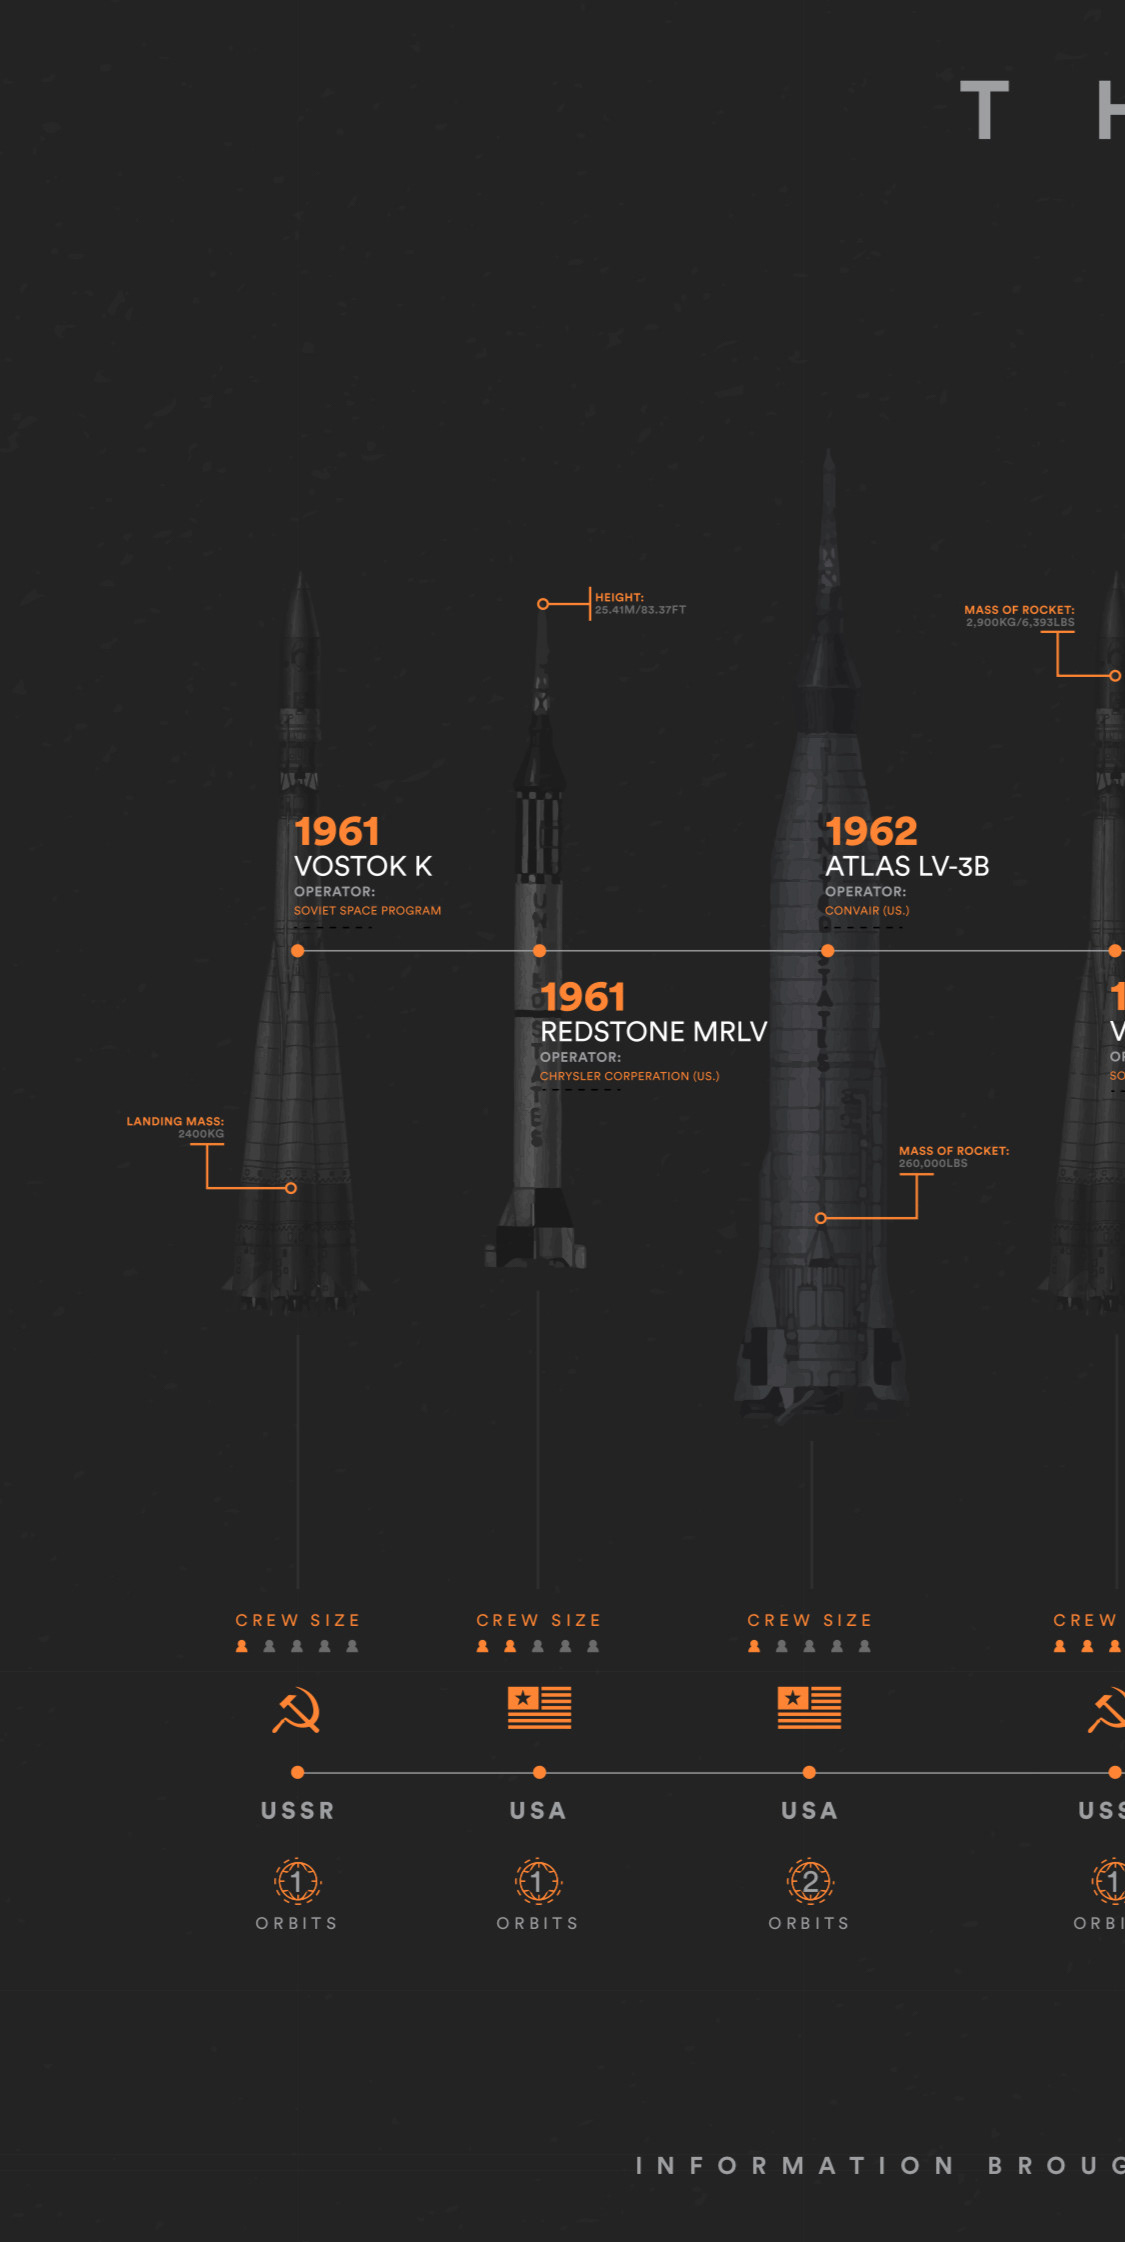 the space race manned rocket timeline infographic on behance